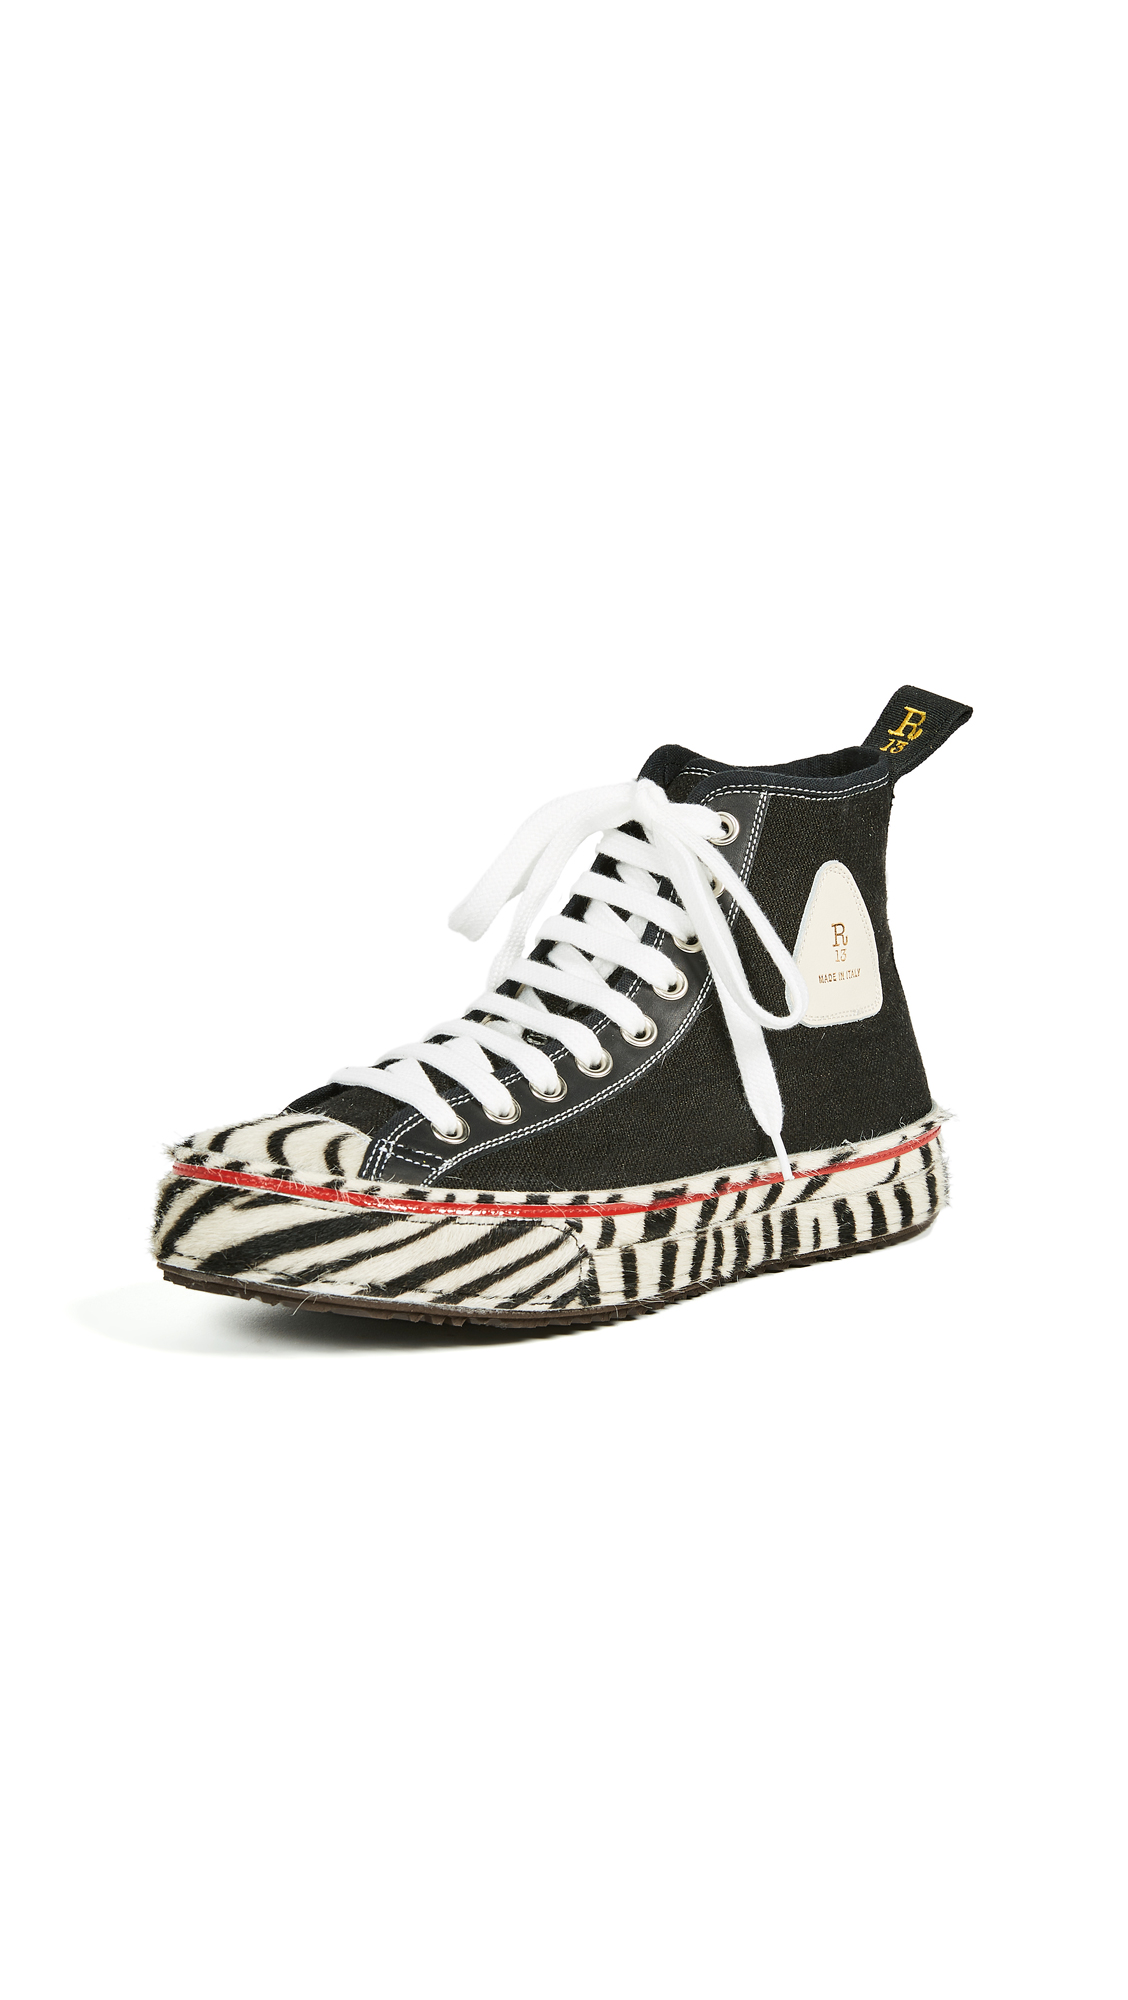 R13 Canvas High Top Sneakers - Black/Zebra